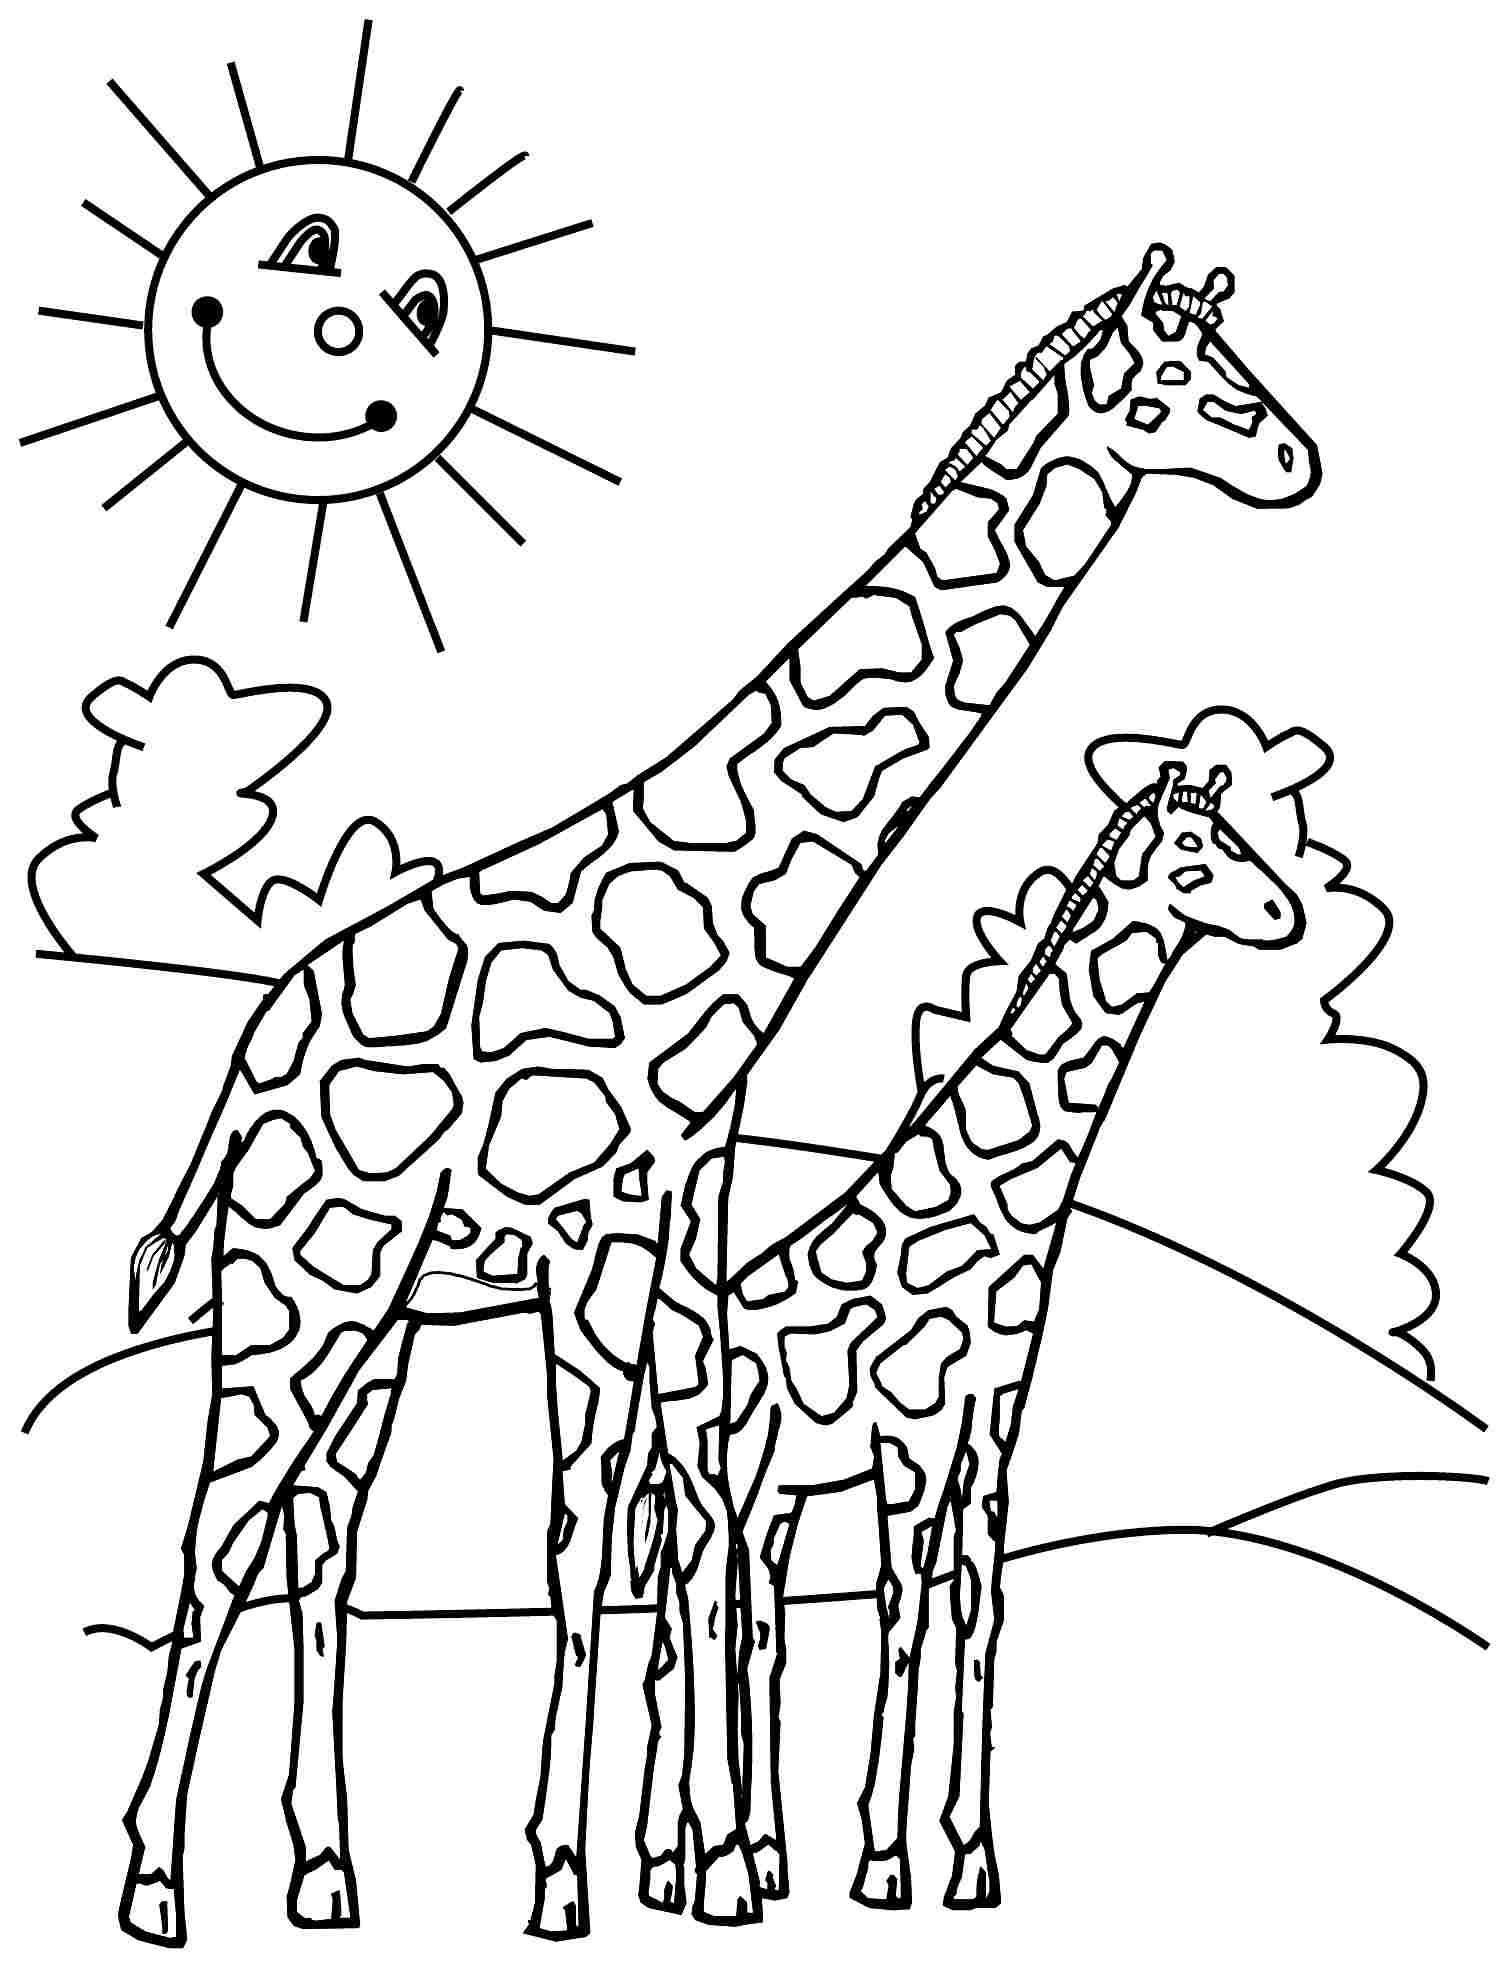 giraffes coloring pages giraffes to download giraffes kids coloring pages giraffes coloring pages